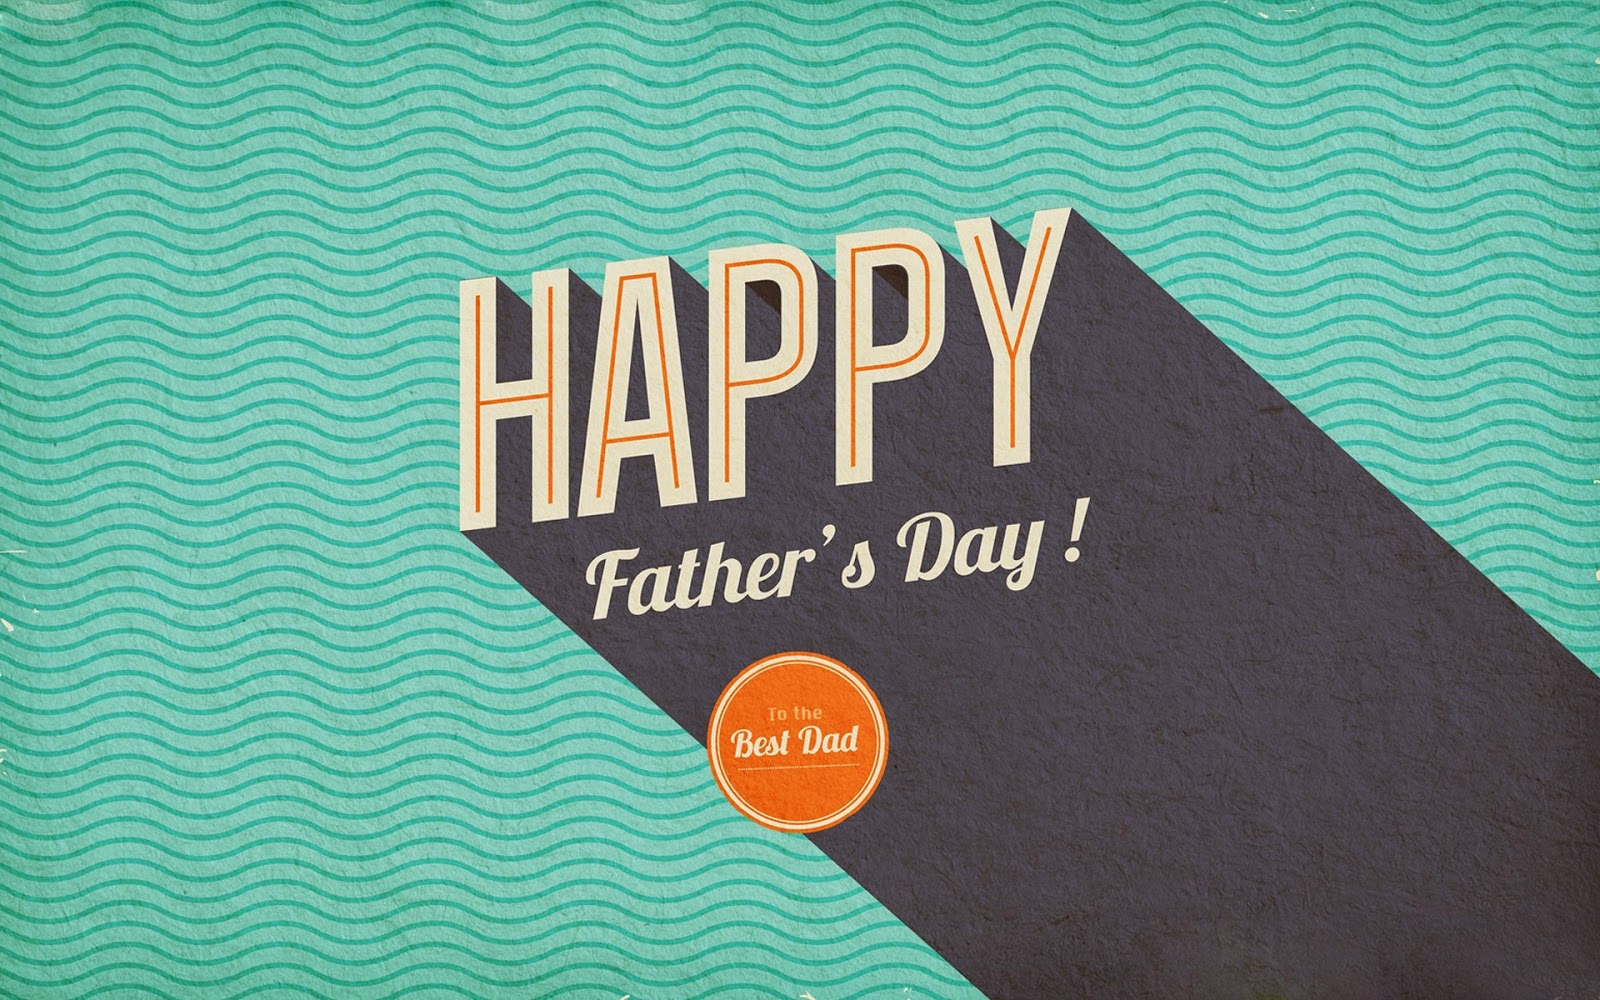 Love You Dad Hd Wallpaper : Happy Fathers Day HD Wallpapers Free Soft Wallpapers